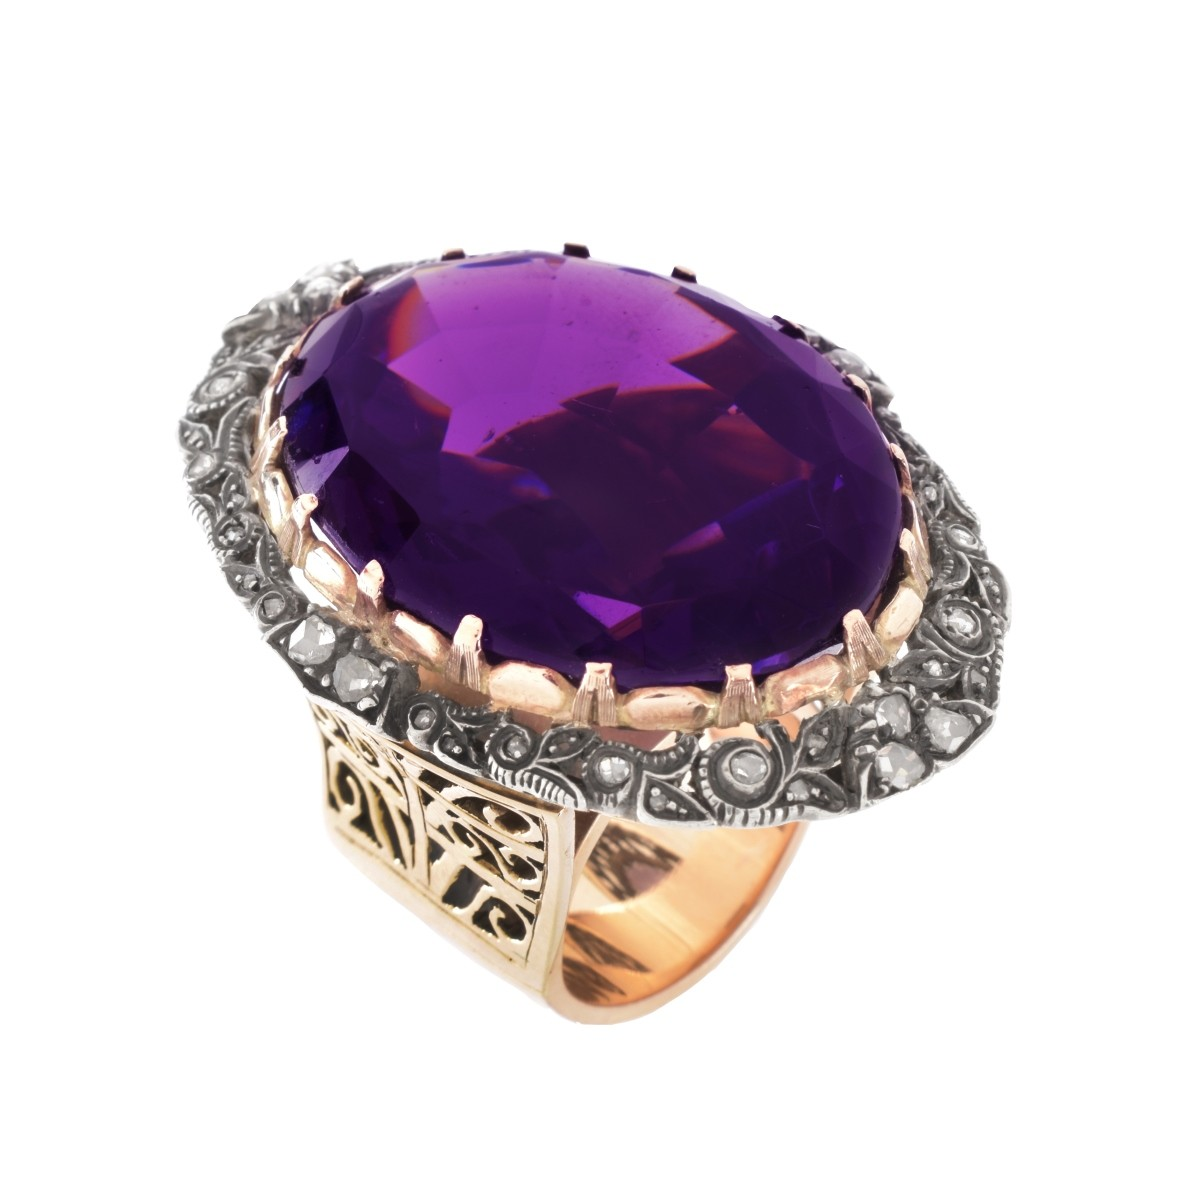 Retro Amethyst Diamond and 14K Ring